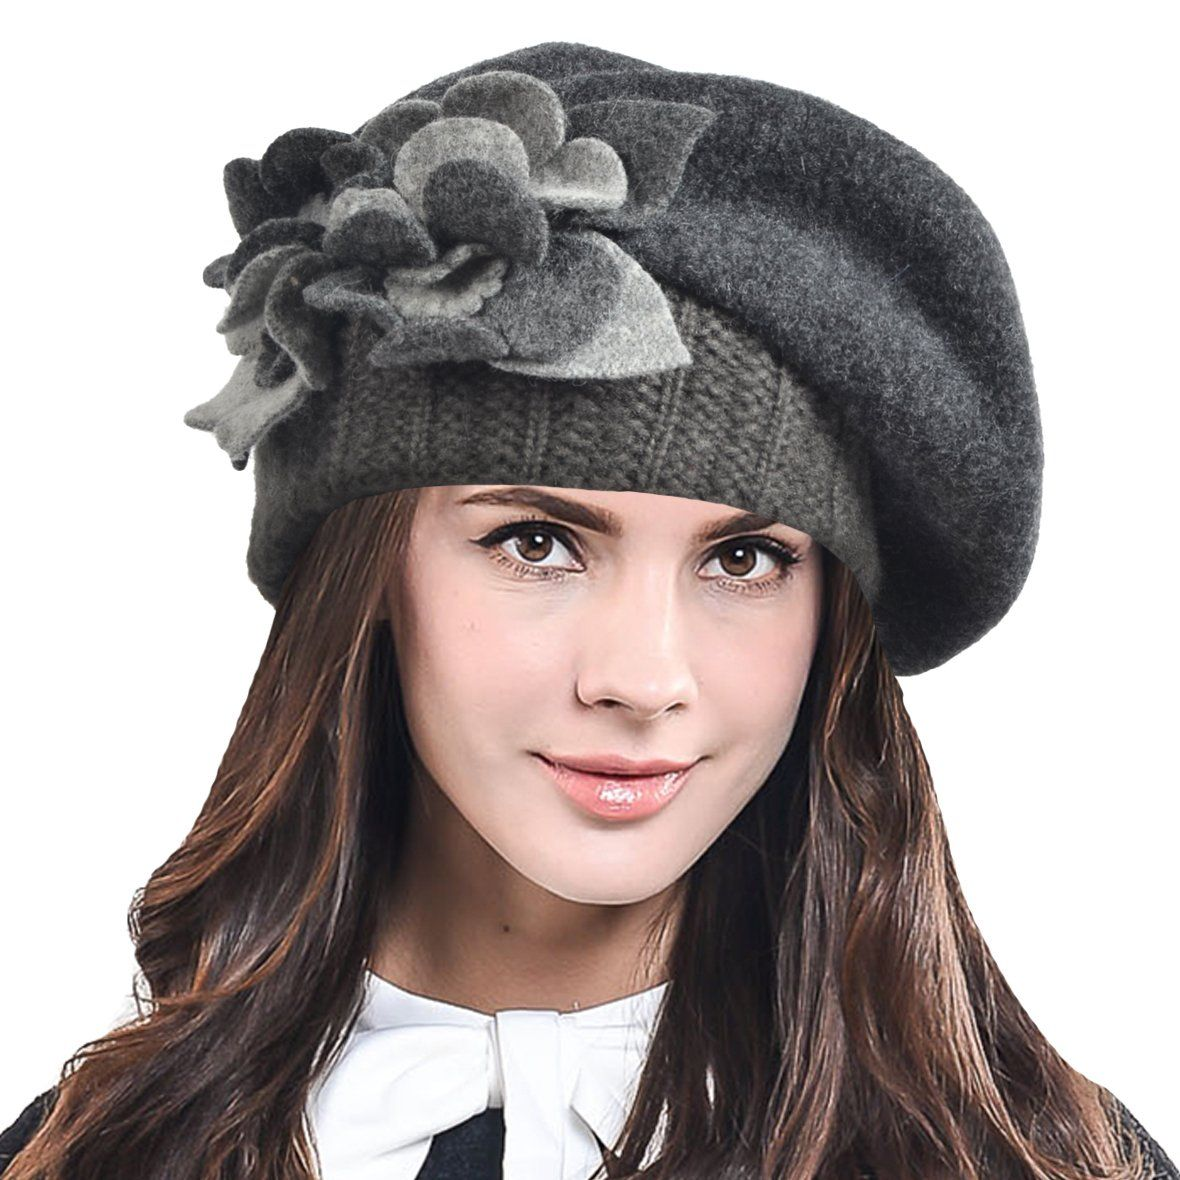 a92c05b3f70fc Geebro Womens Beret Hat Fashion Solid Black Wool Knitted Berets With Rhinestones  Ladies French Artist Knit ...